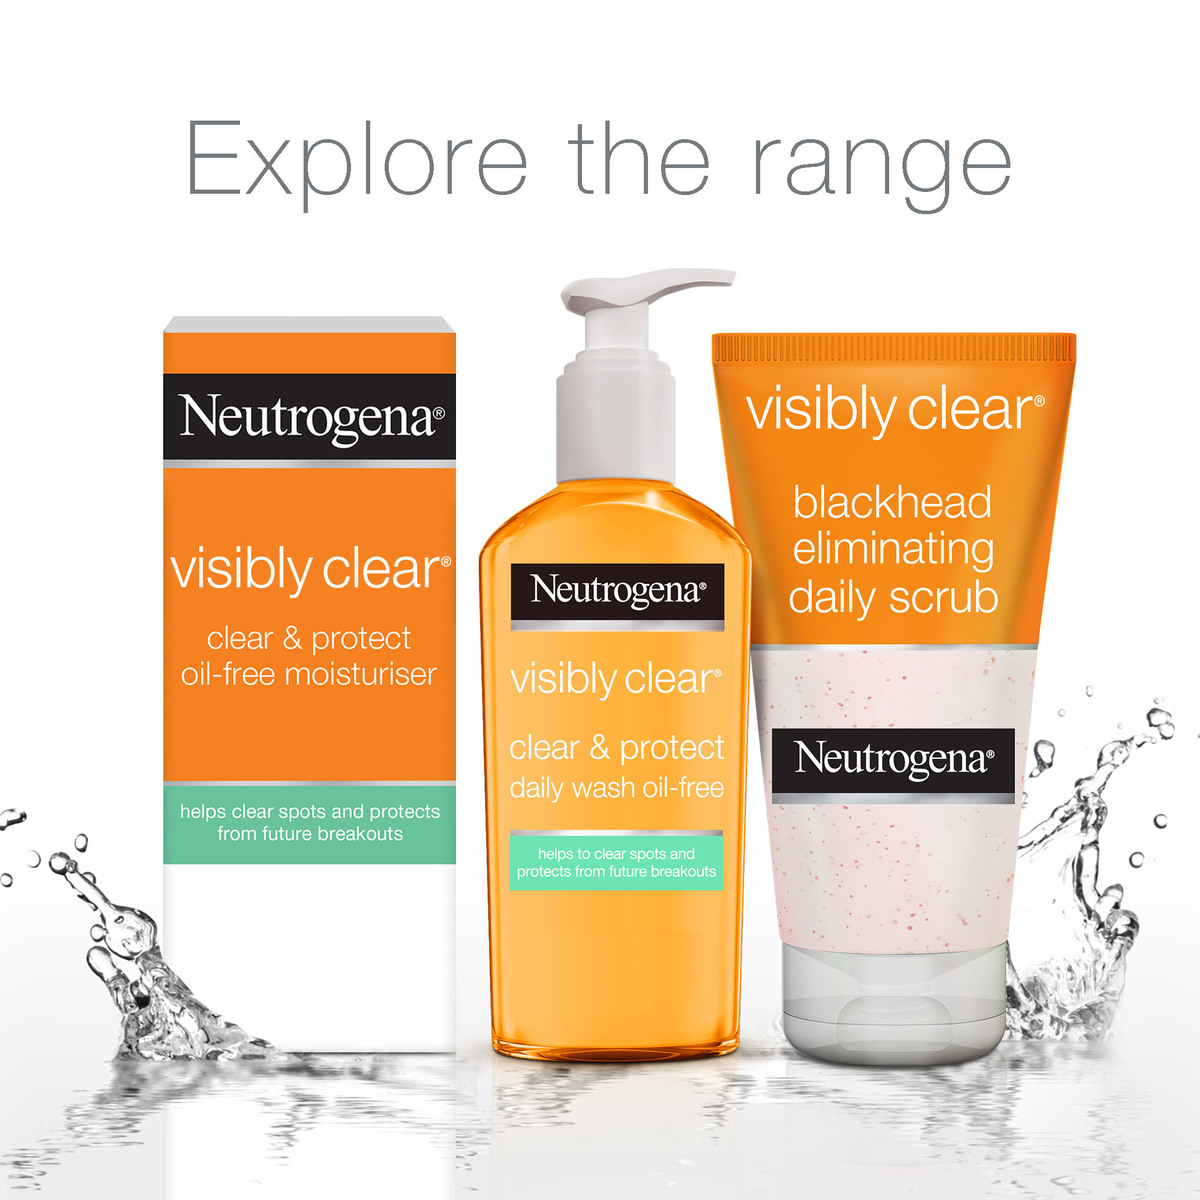 Buy Neutrogena Face Cream Visibly Clear Spot Proofing Oil